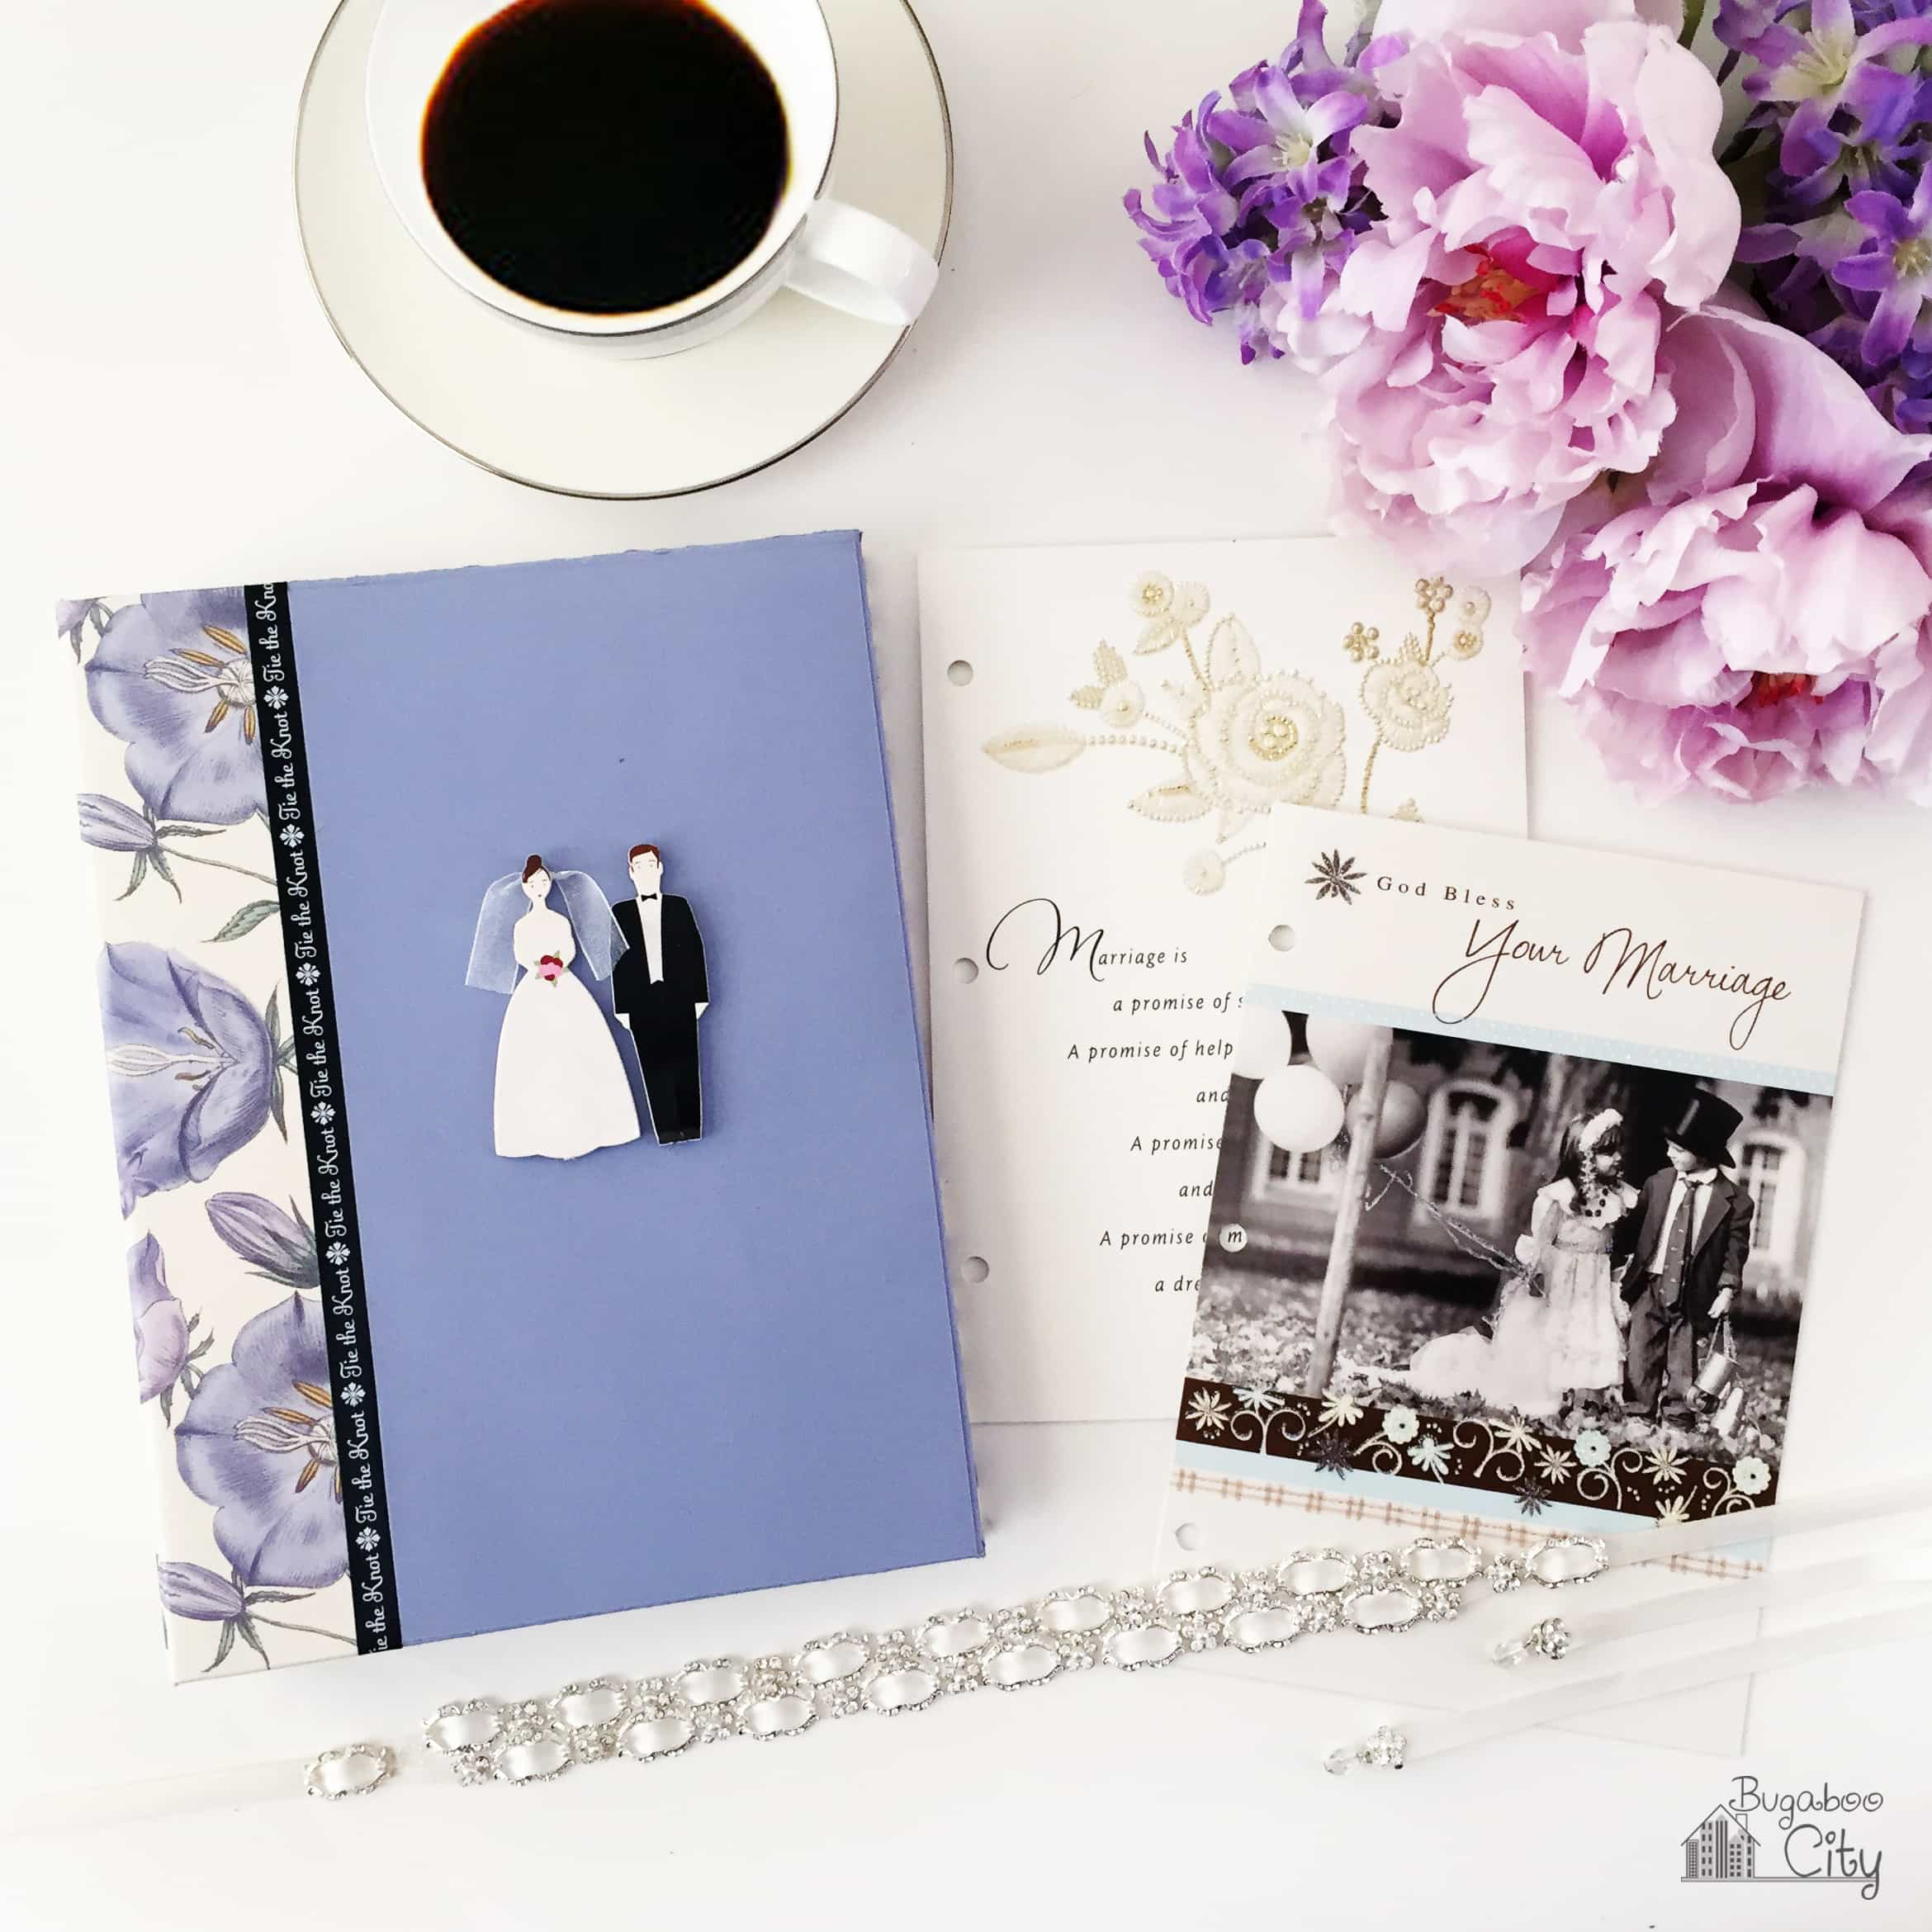 Wedding Card scrapbook sits next to fresh flowers, a cup of coffee and wedding cards.